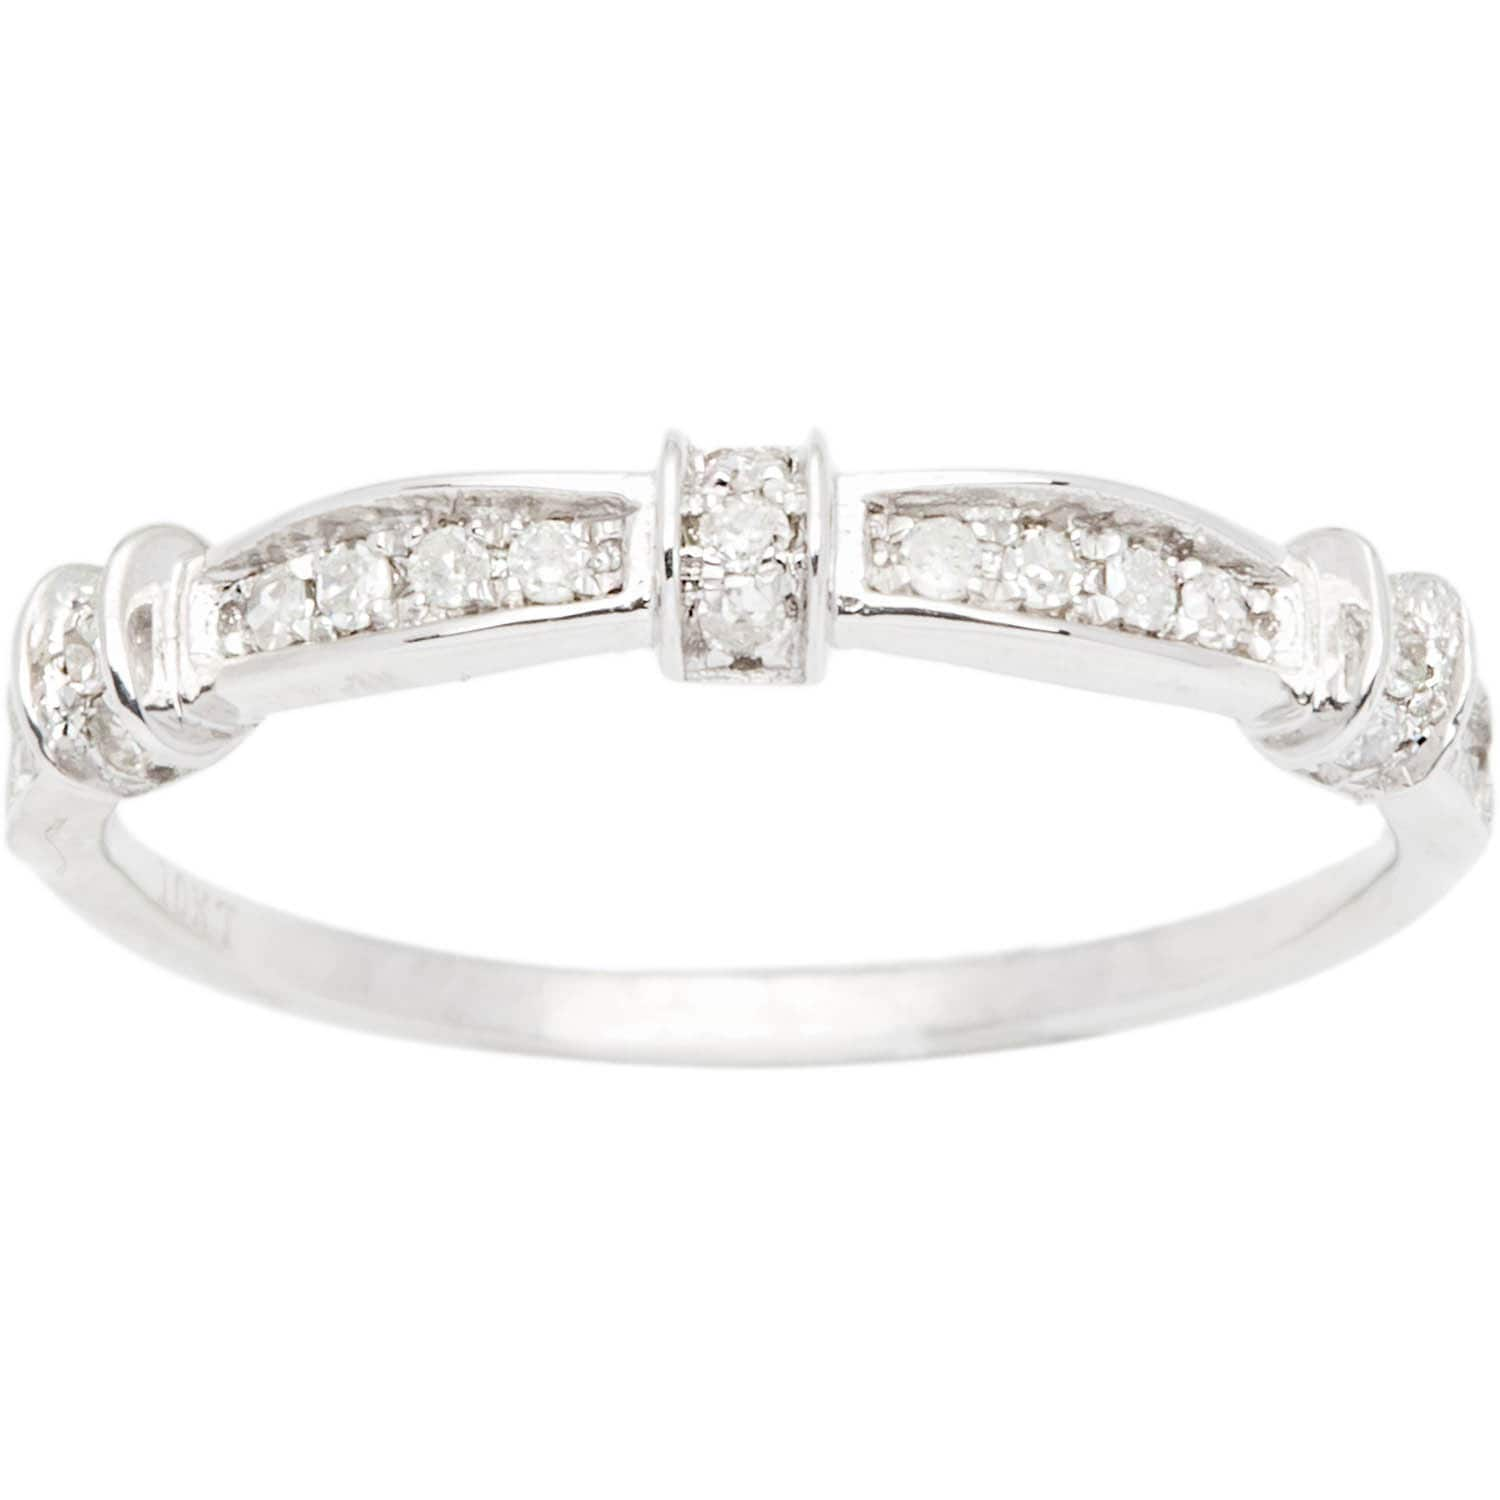 G-H,I2-I3 1//20 cttw, Diamond Wedding Band in Sterling Silver Size-10.25